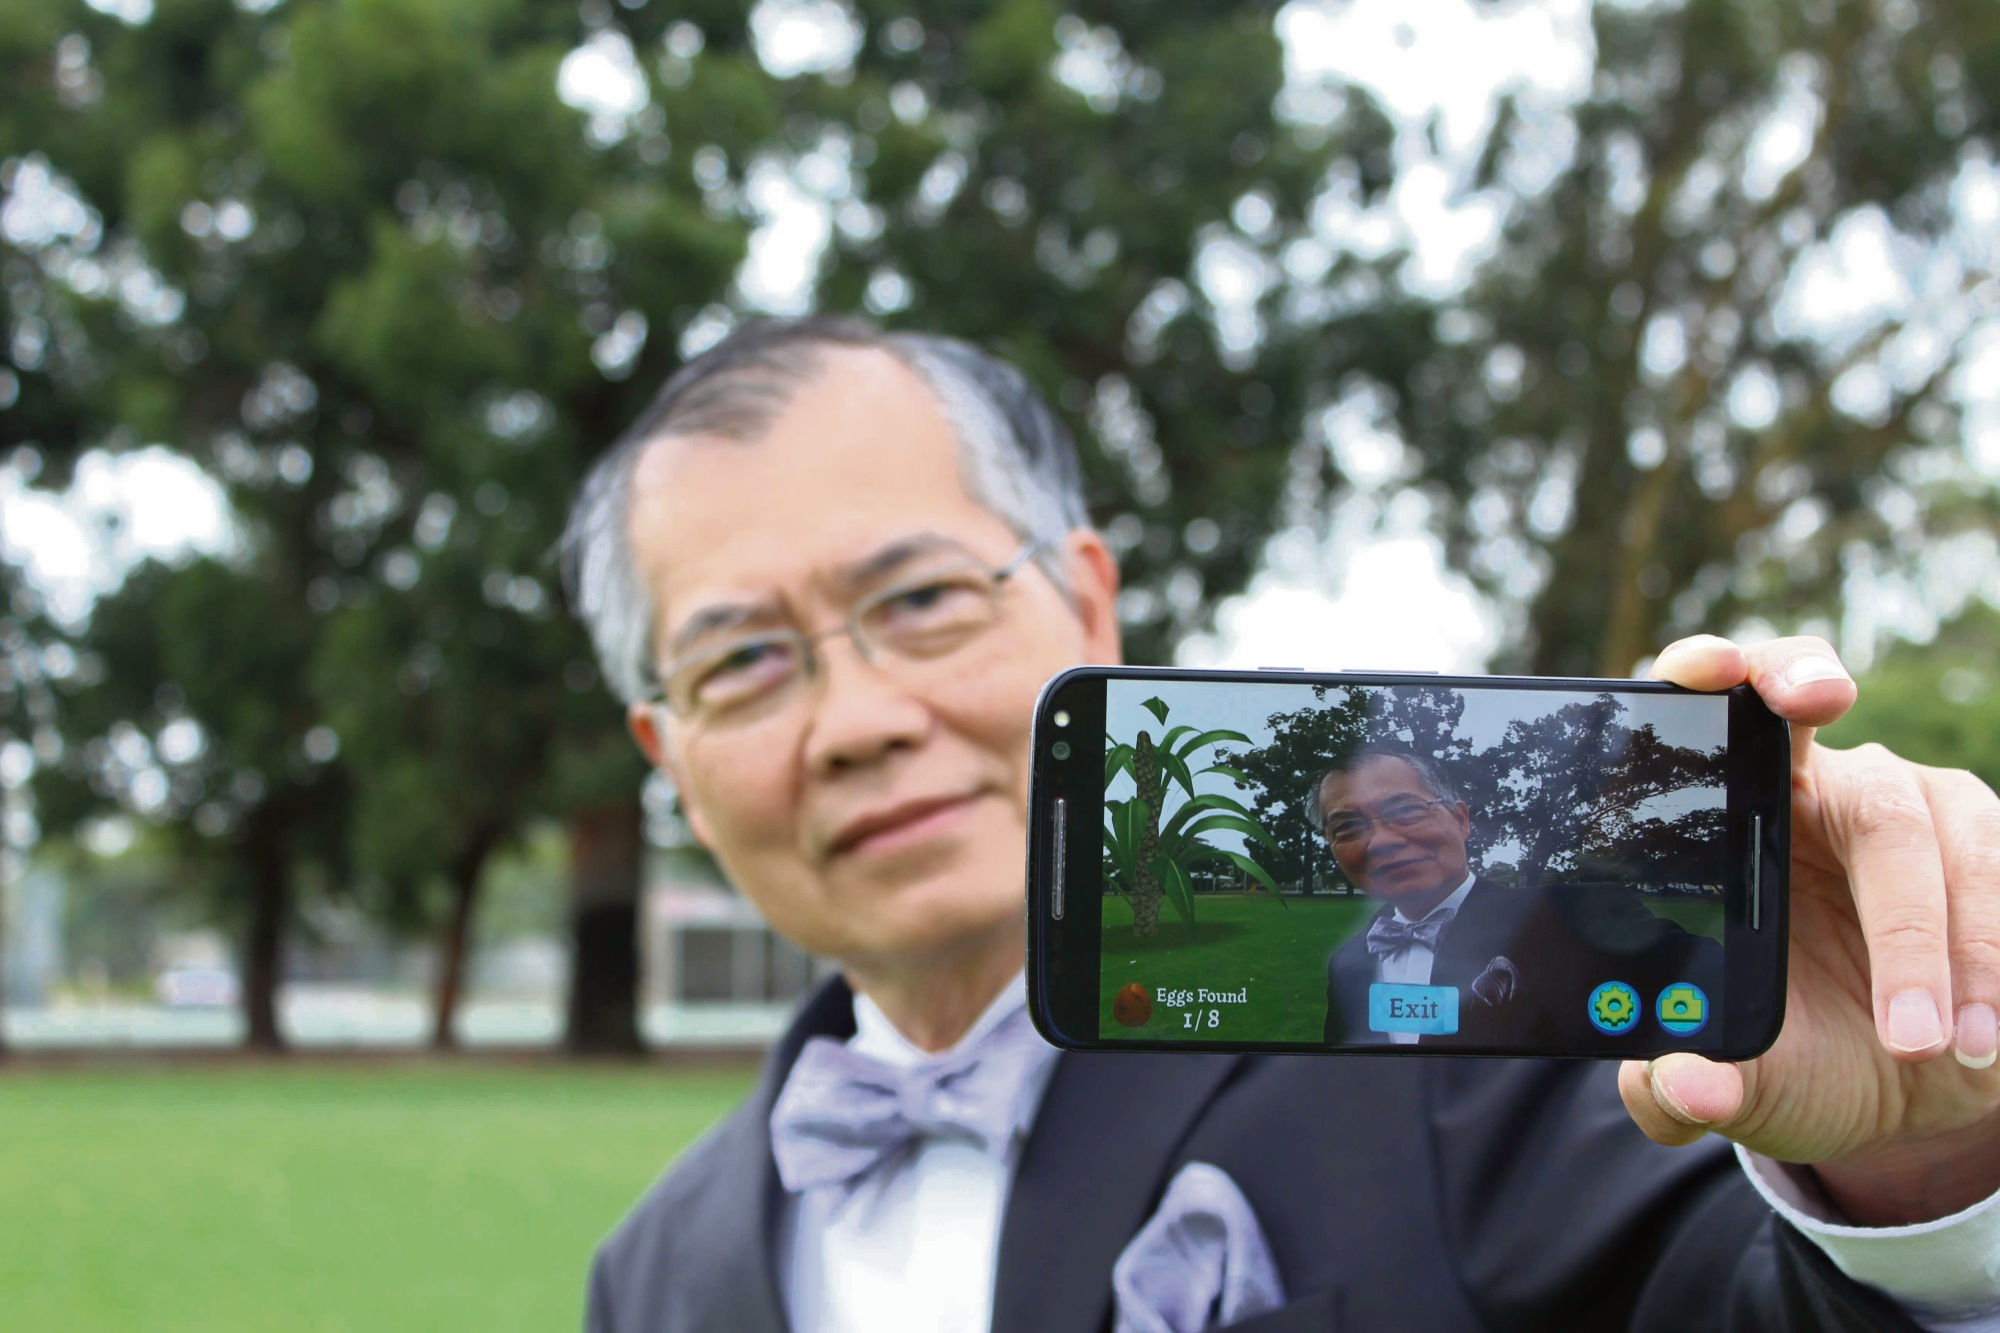 Canning Mayor Paul Ng gets magical in the park with the new app.